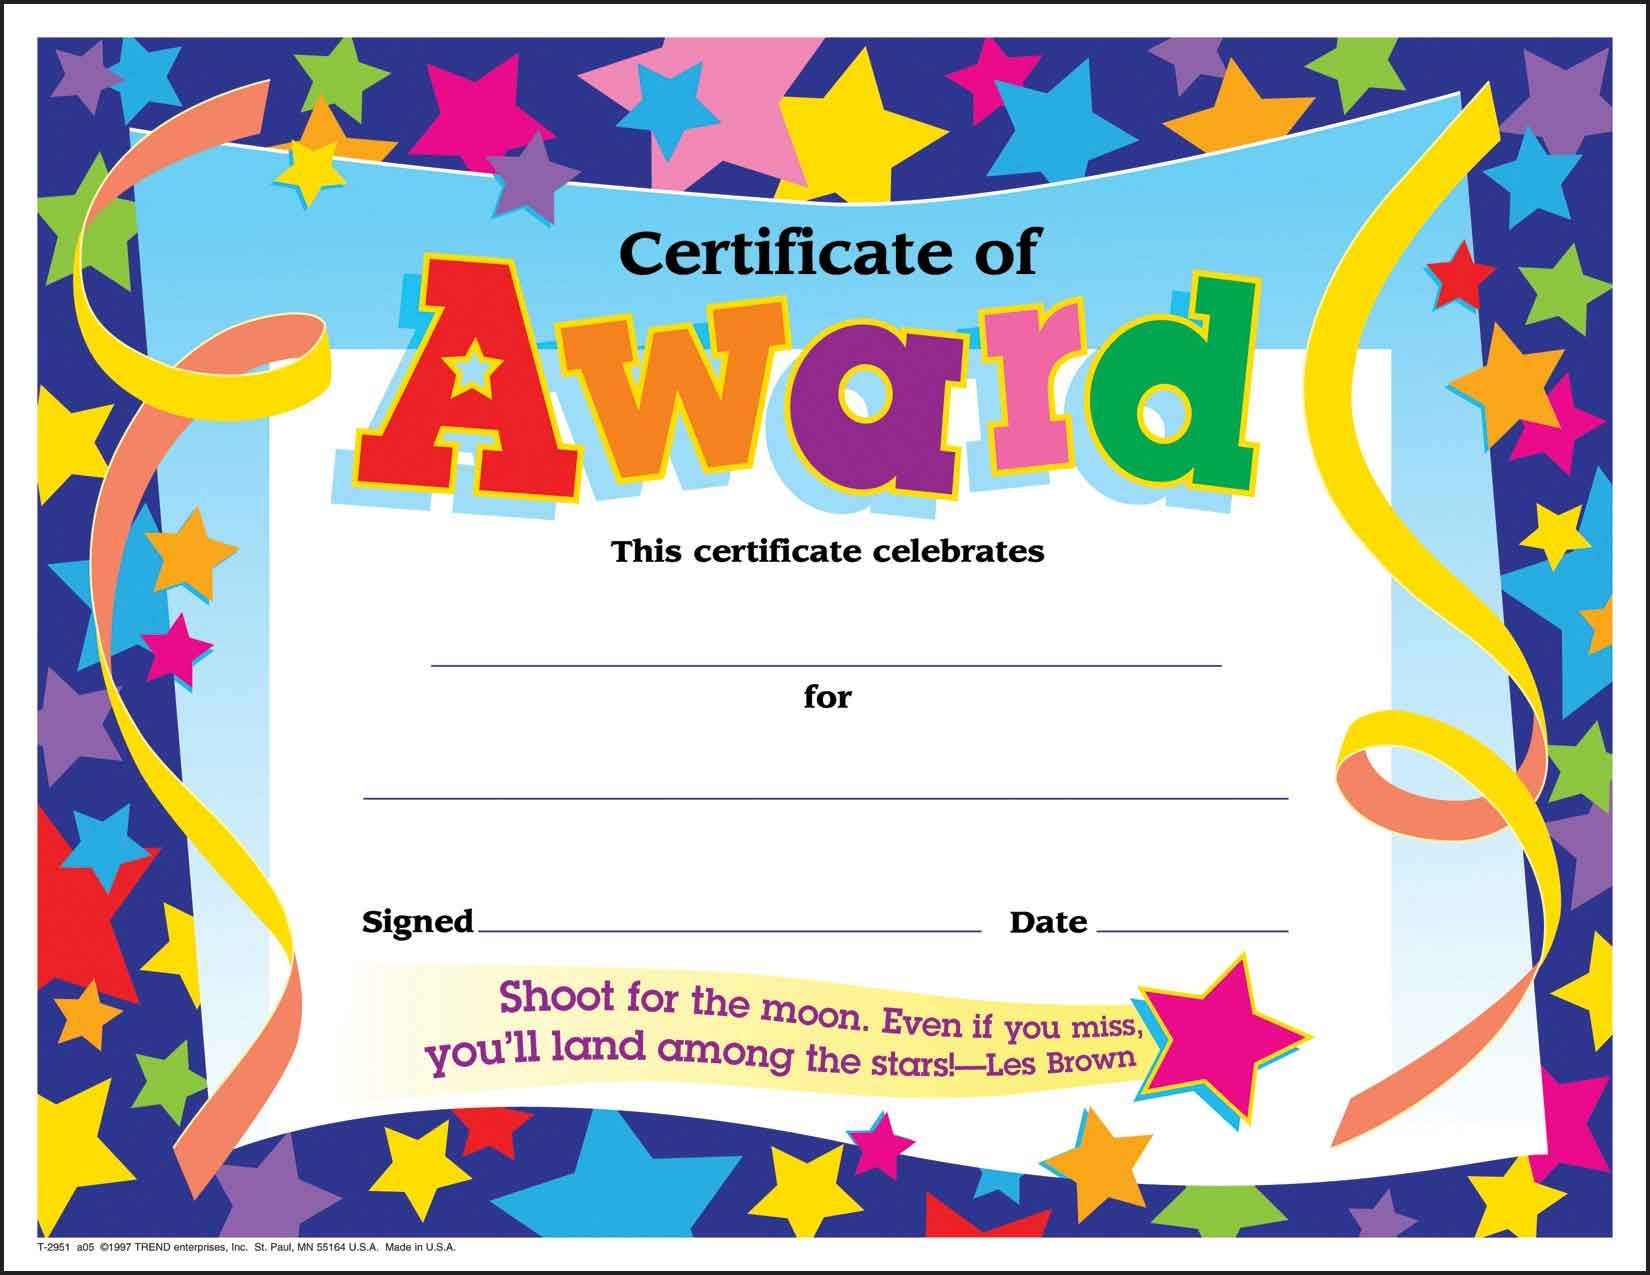 Certificate Template For Kids Free Certificate Templates - Free Printable Children's Certificates Templates